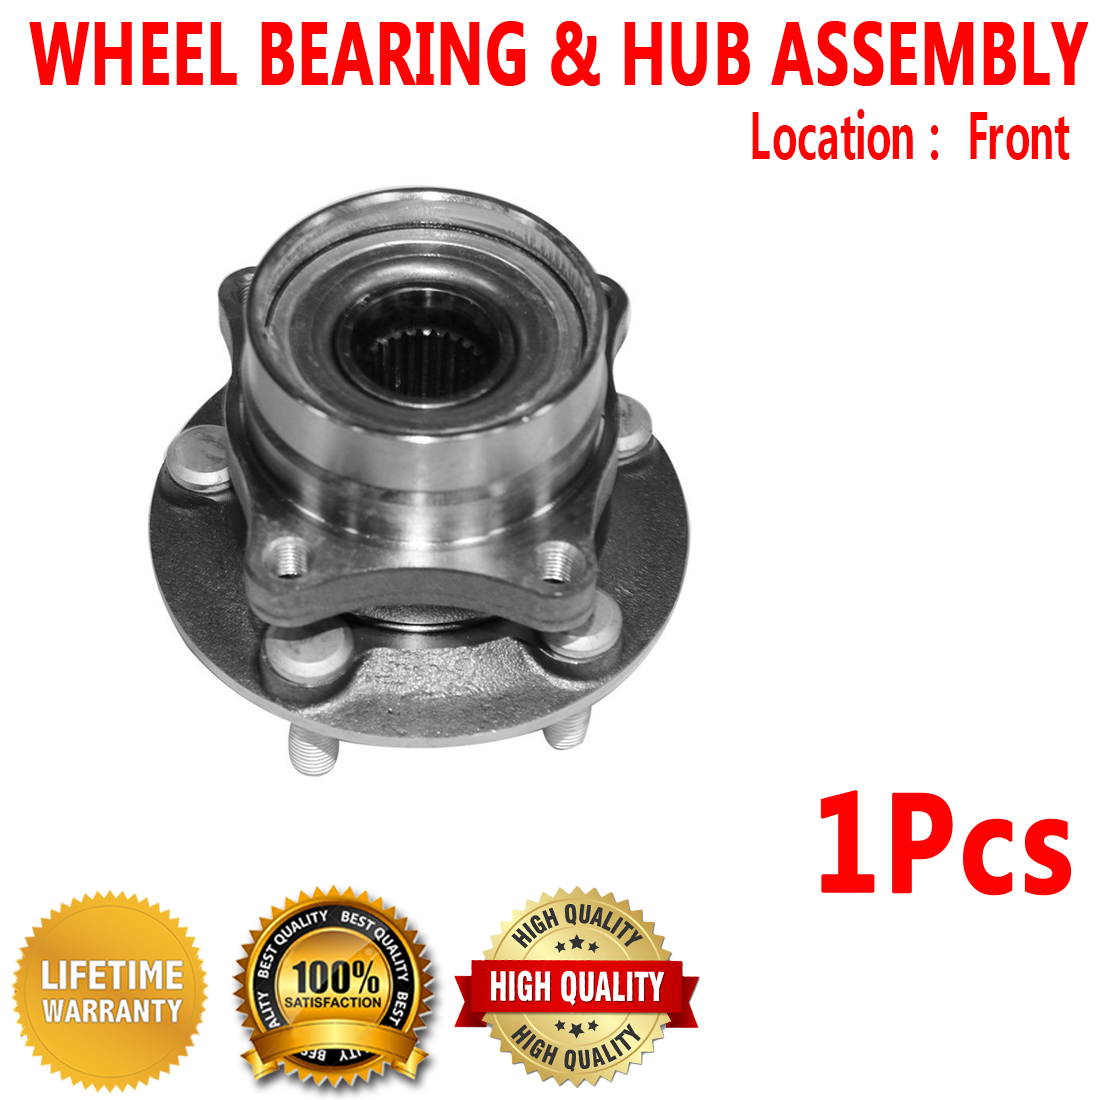 2009 fits Toyota Prius Front Wheel Bearing and Hub Assembly One Bearing Included with Two Years Warranty Note: FWD